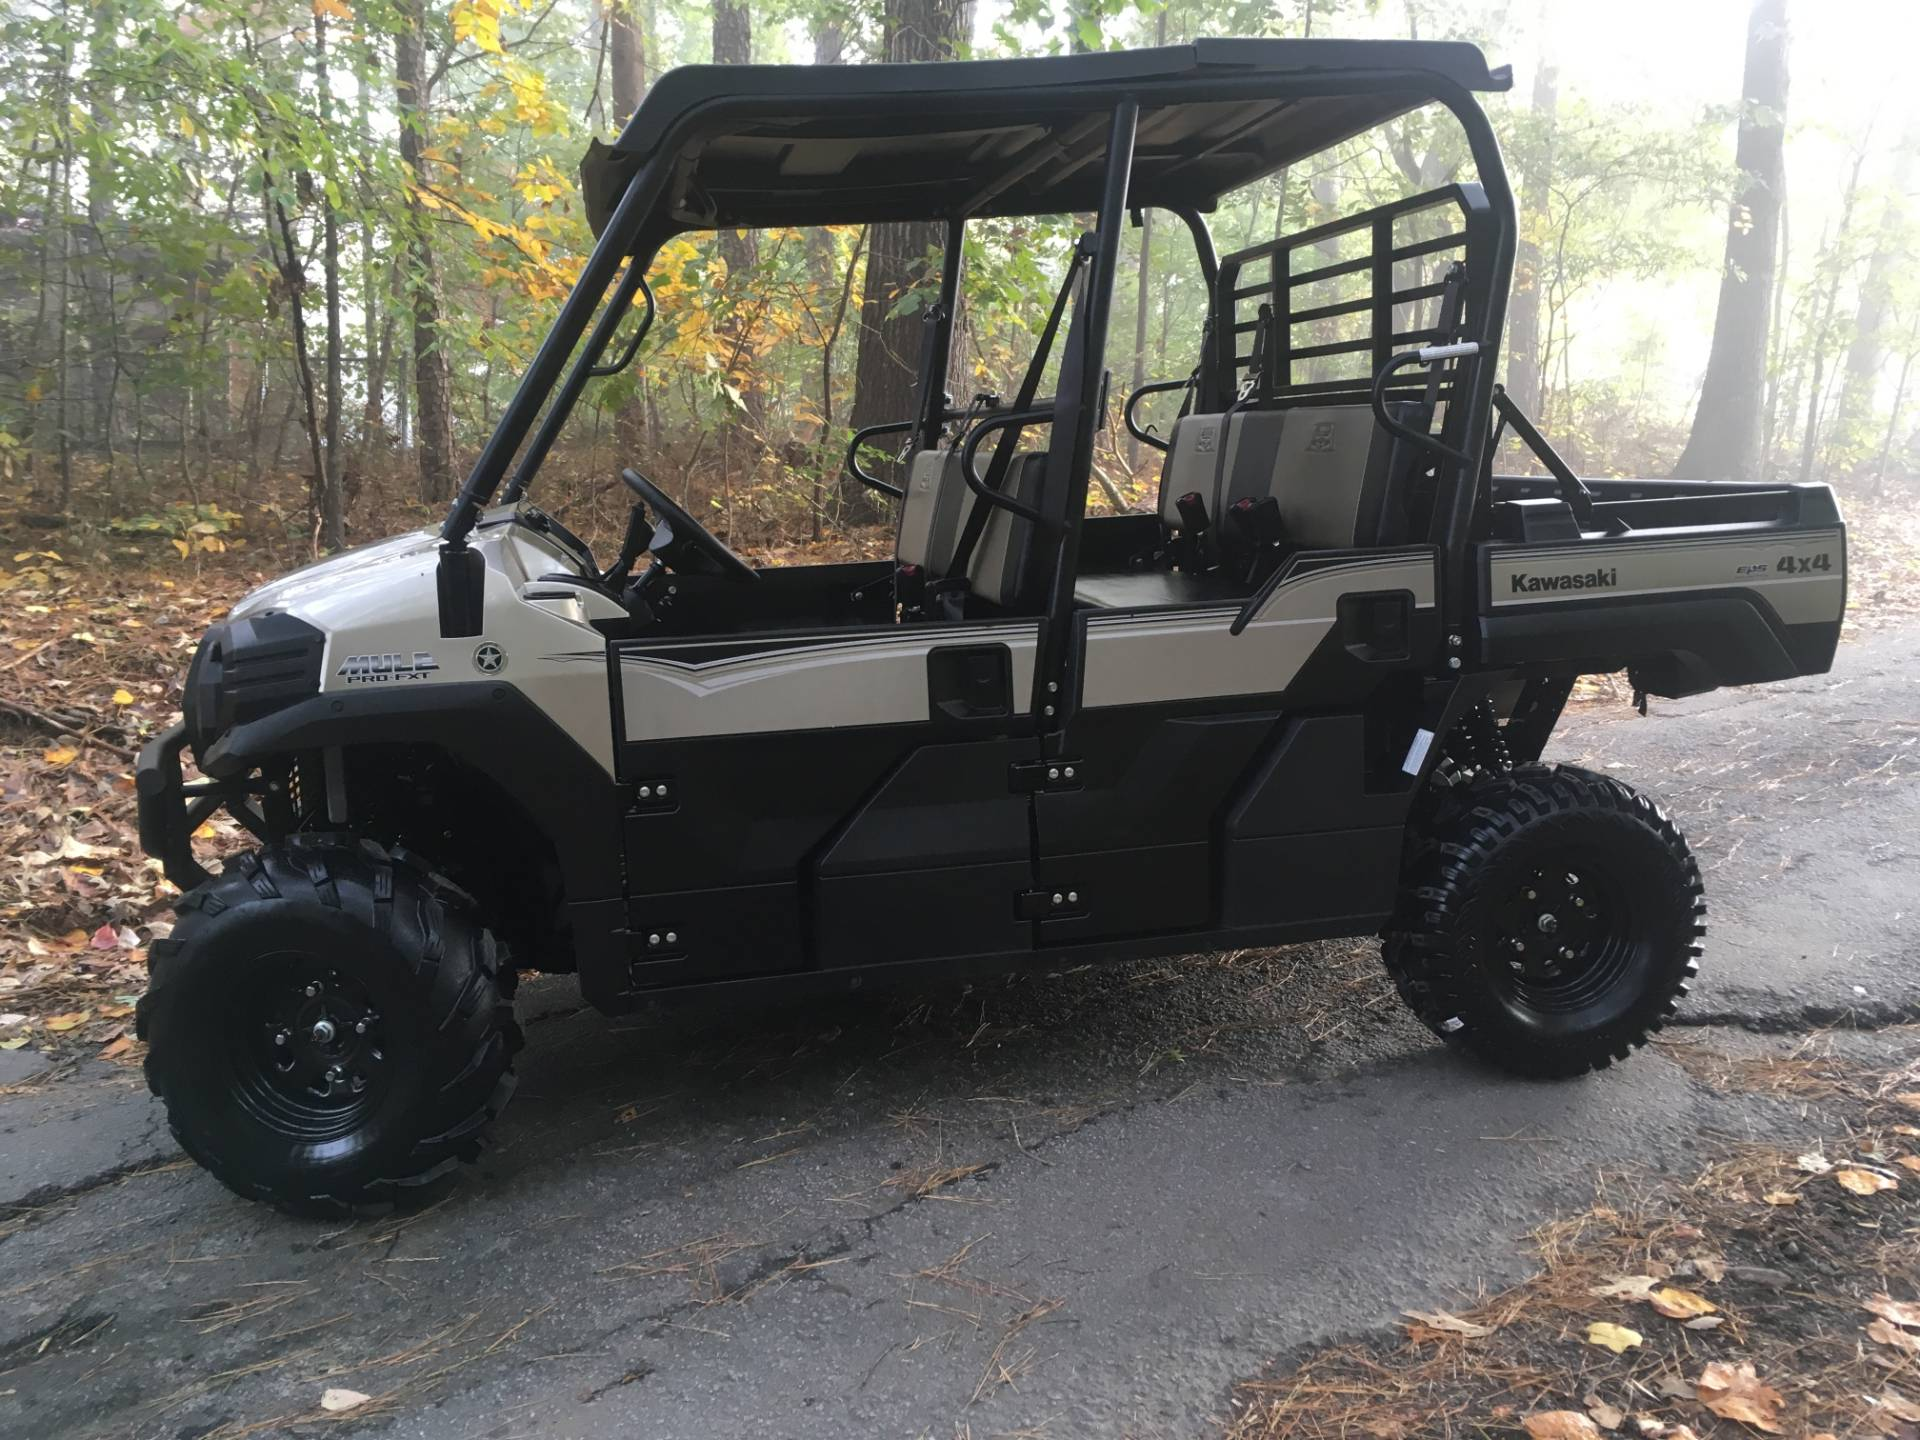 2017 Kawasaki MULE PRO FXT RANCH EDITION 2